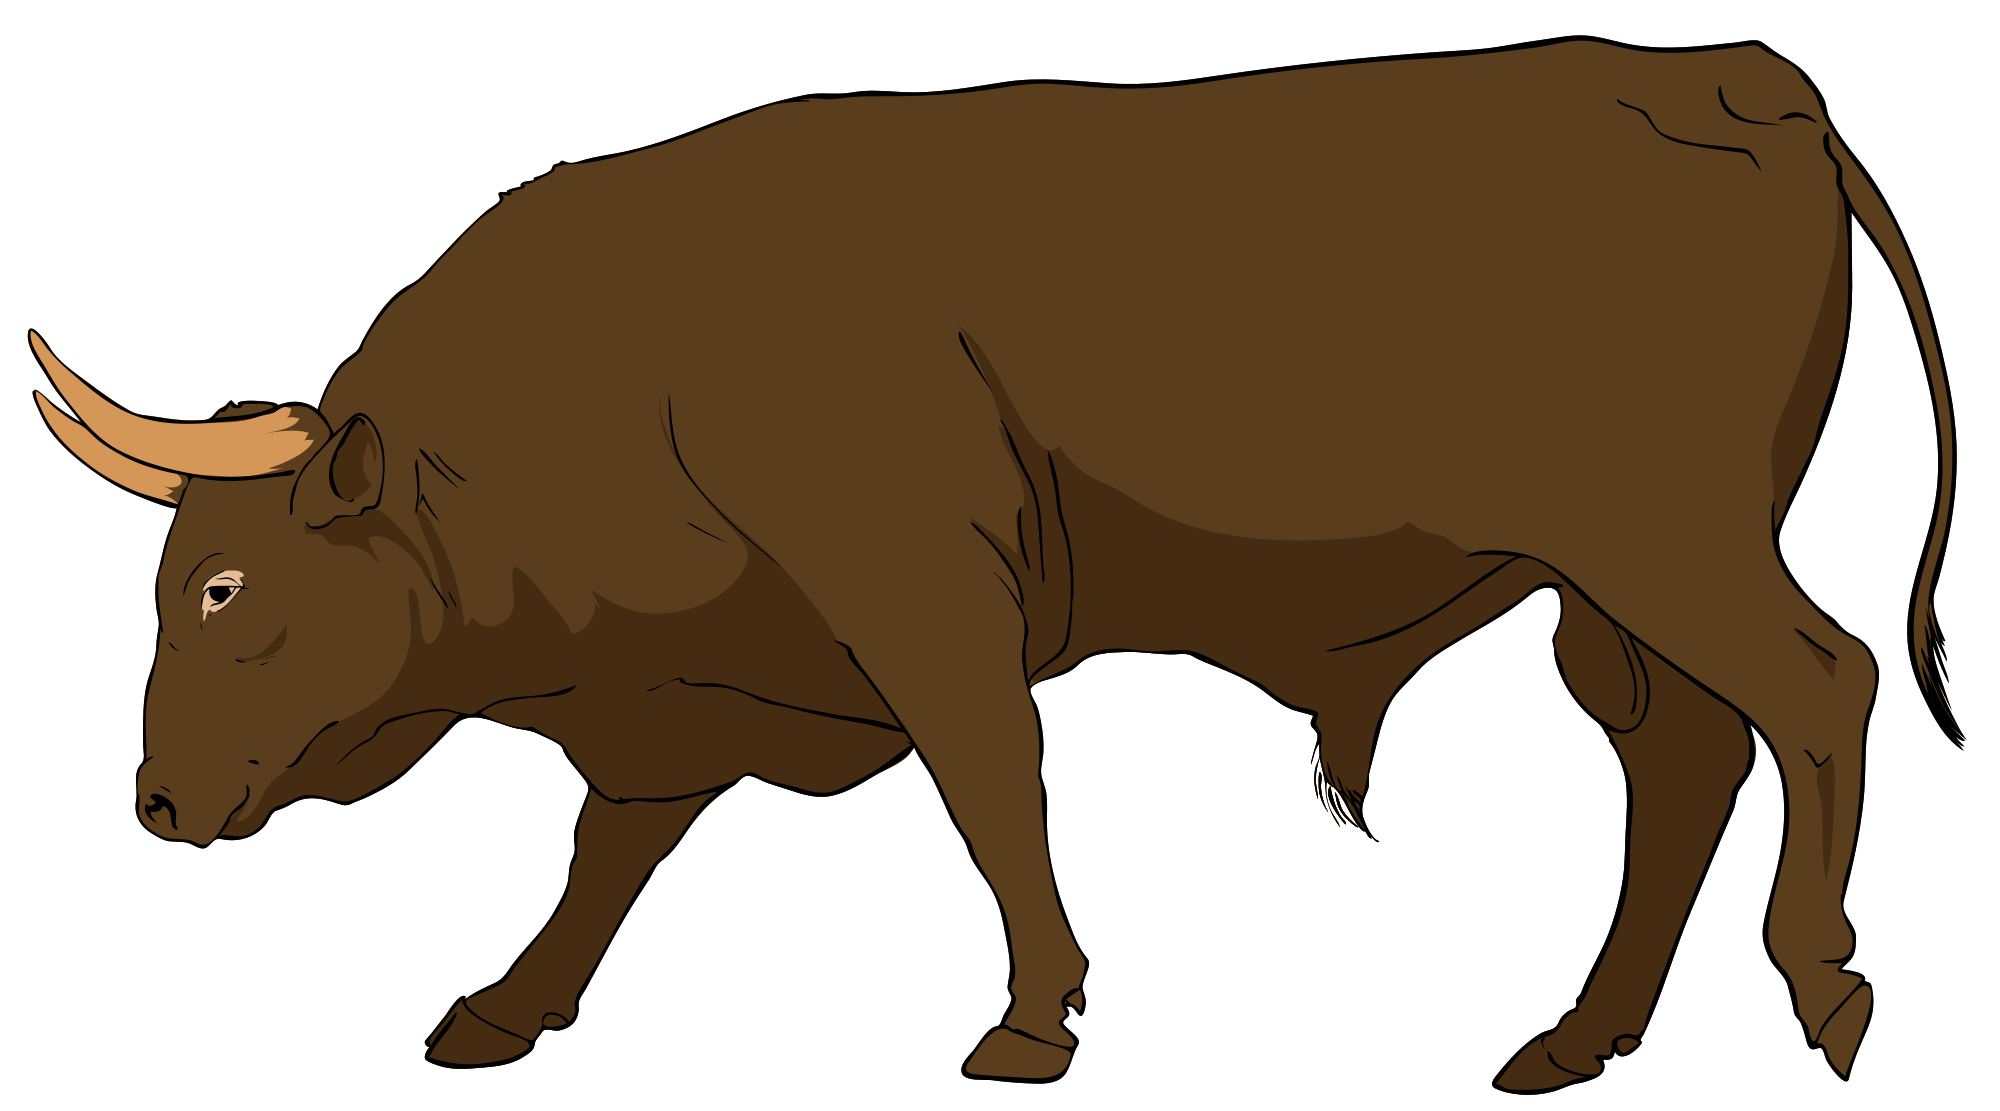 Bull clipart #7, Download drawings